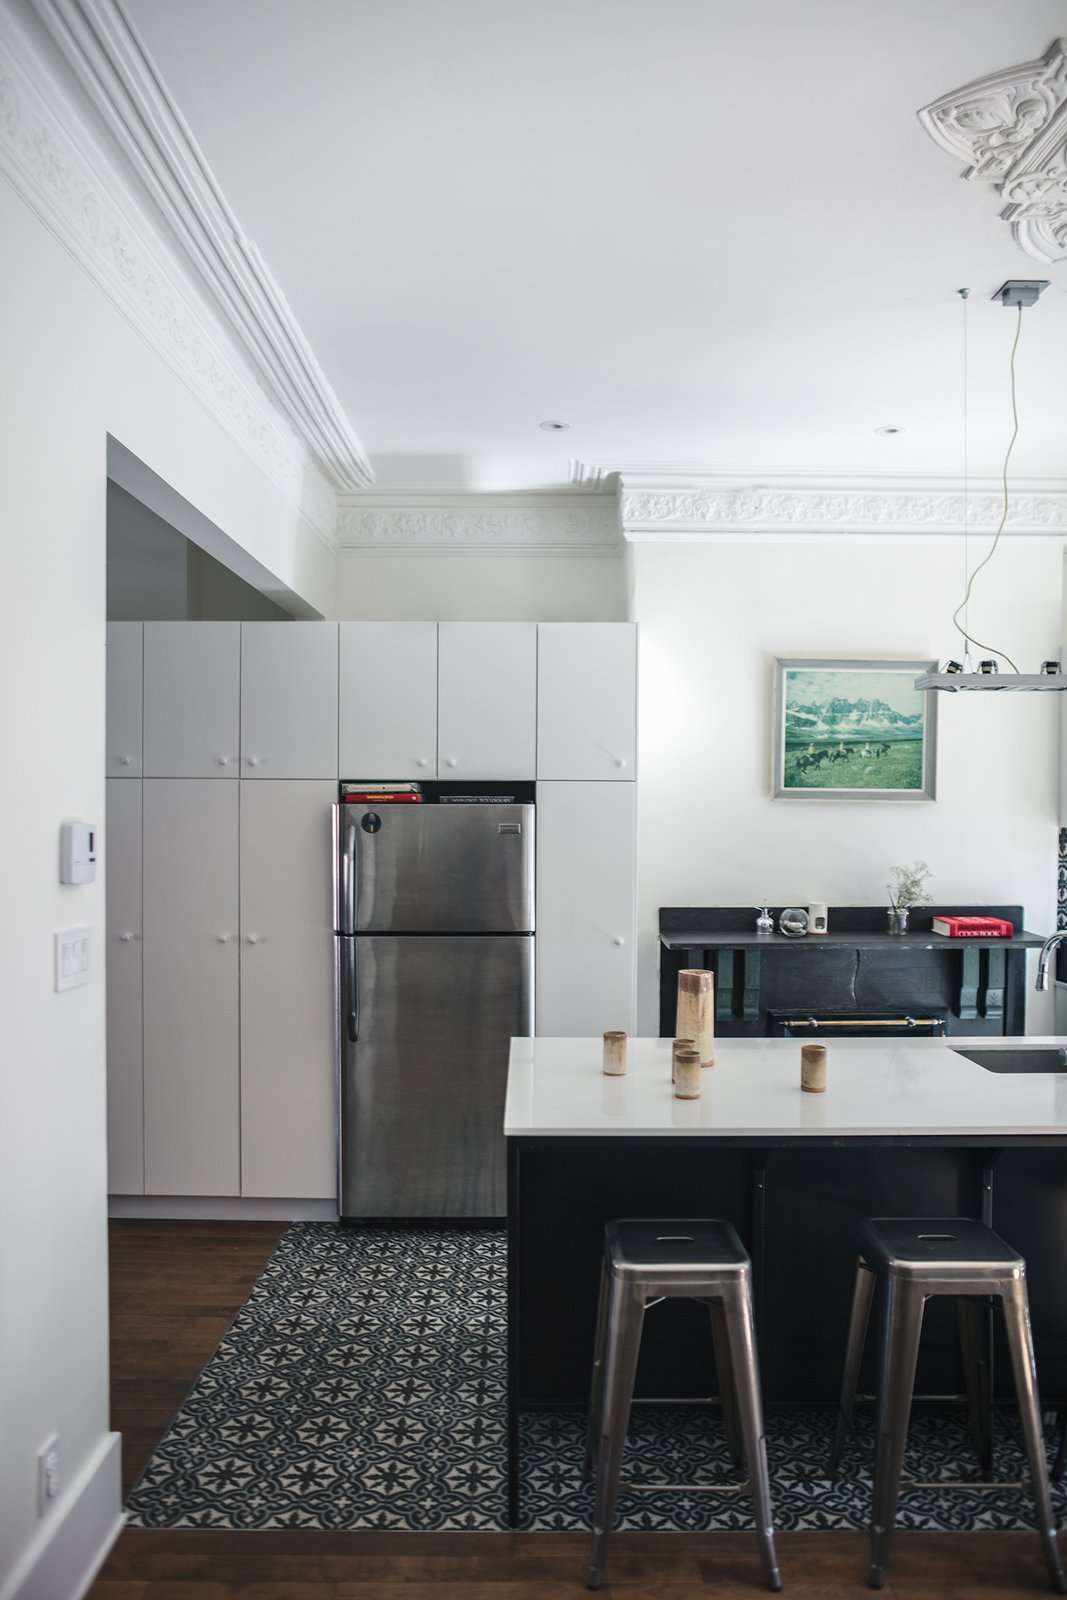 Kitchen, Refrigerator, White Cabinet, Medium Hardwood Floor, and Ceramic Tile Floor IKEA cabinets create storage around a Frigidaire refrigerator. The ornate molding maintains the historic character of the house.  Photo 3 of 6 in Historic Montreal House Meets DIY IKEA